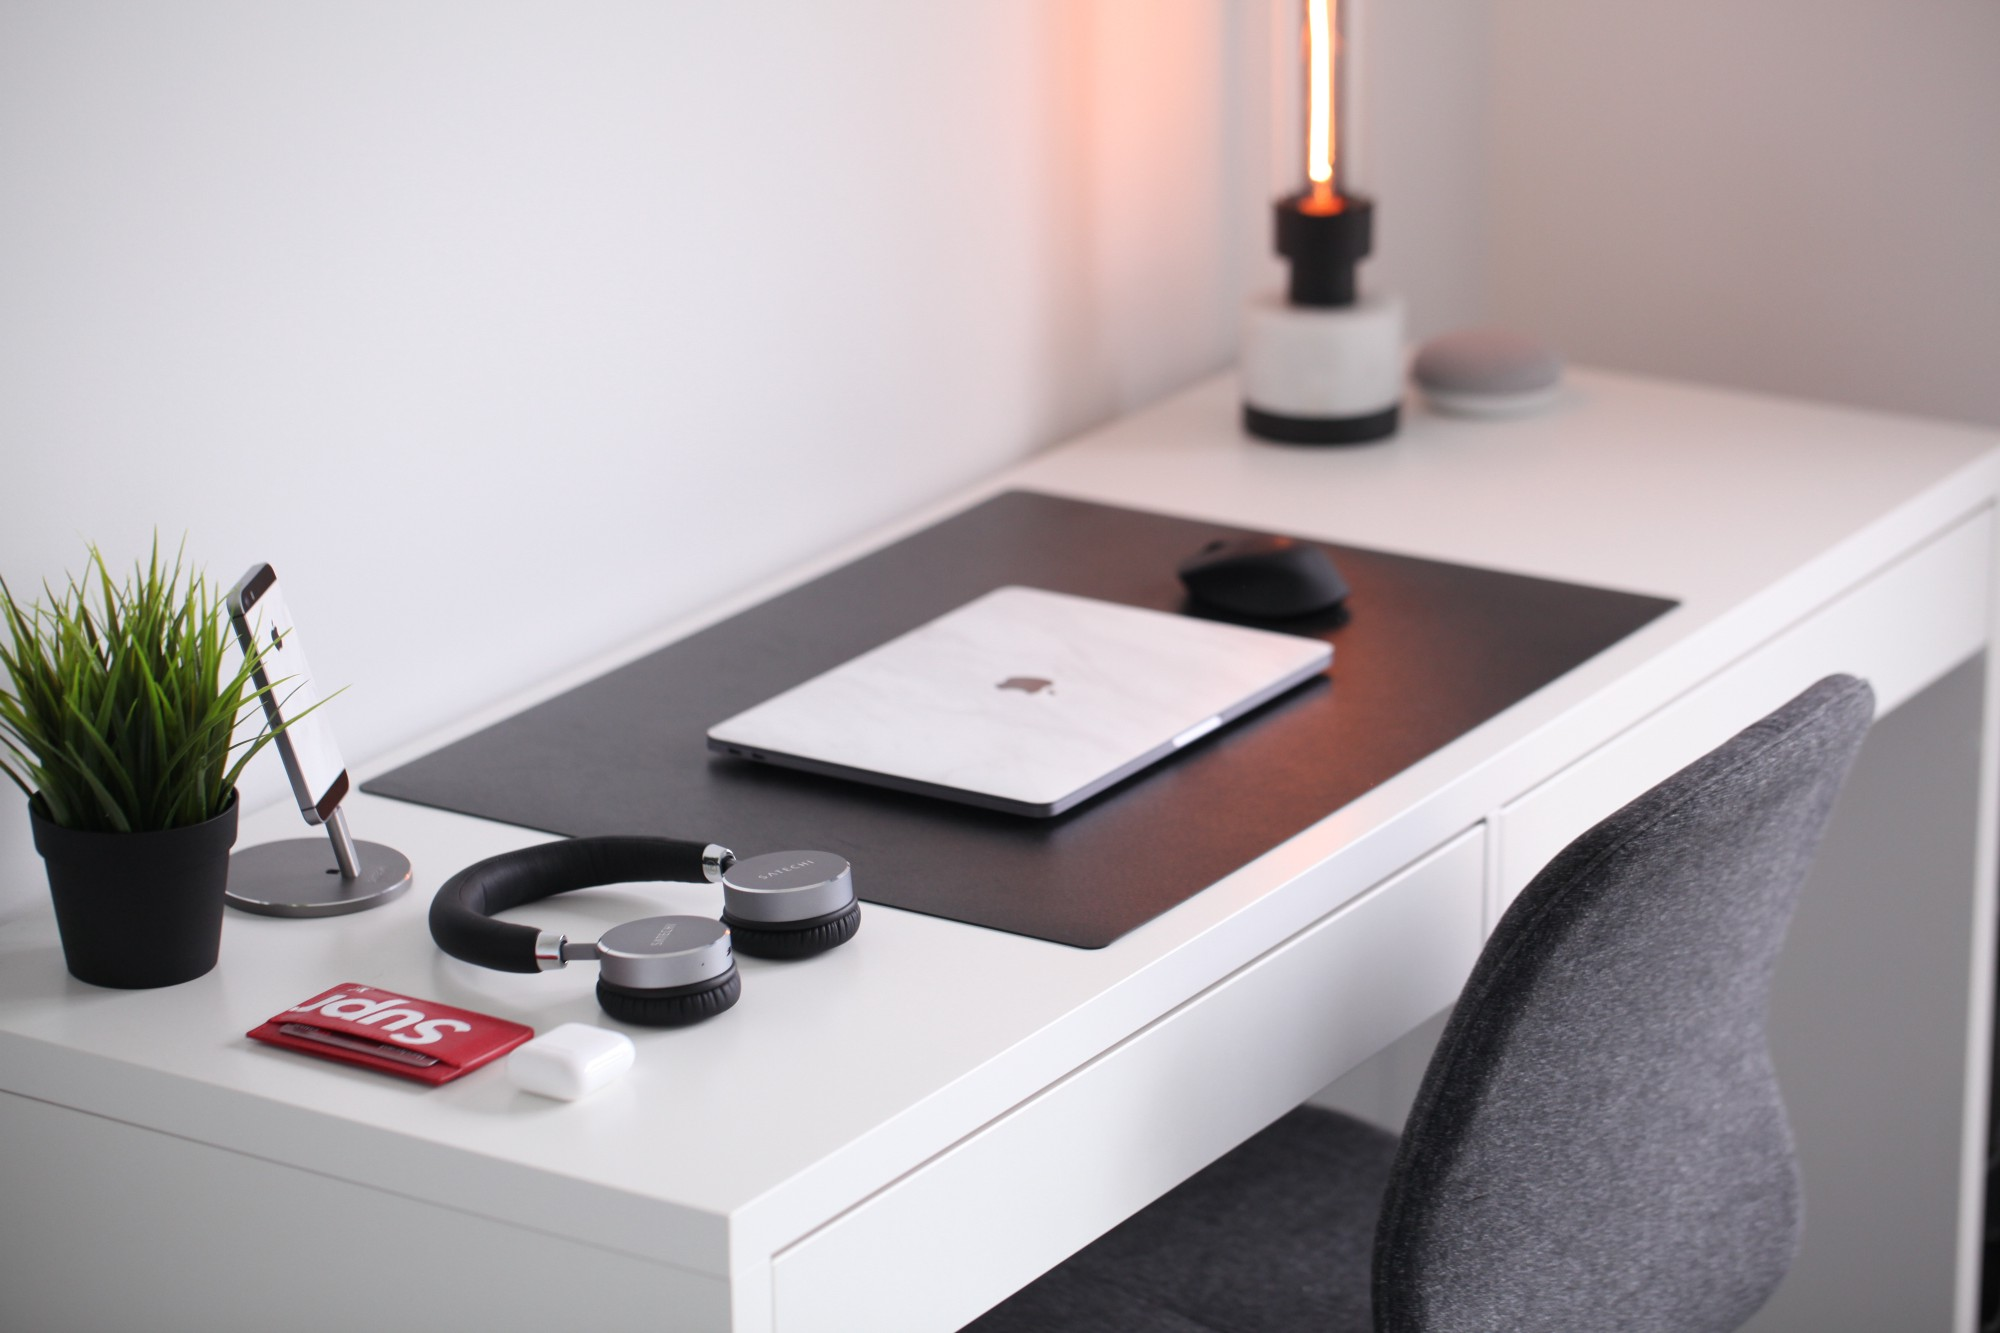 a simple desk with a laptop